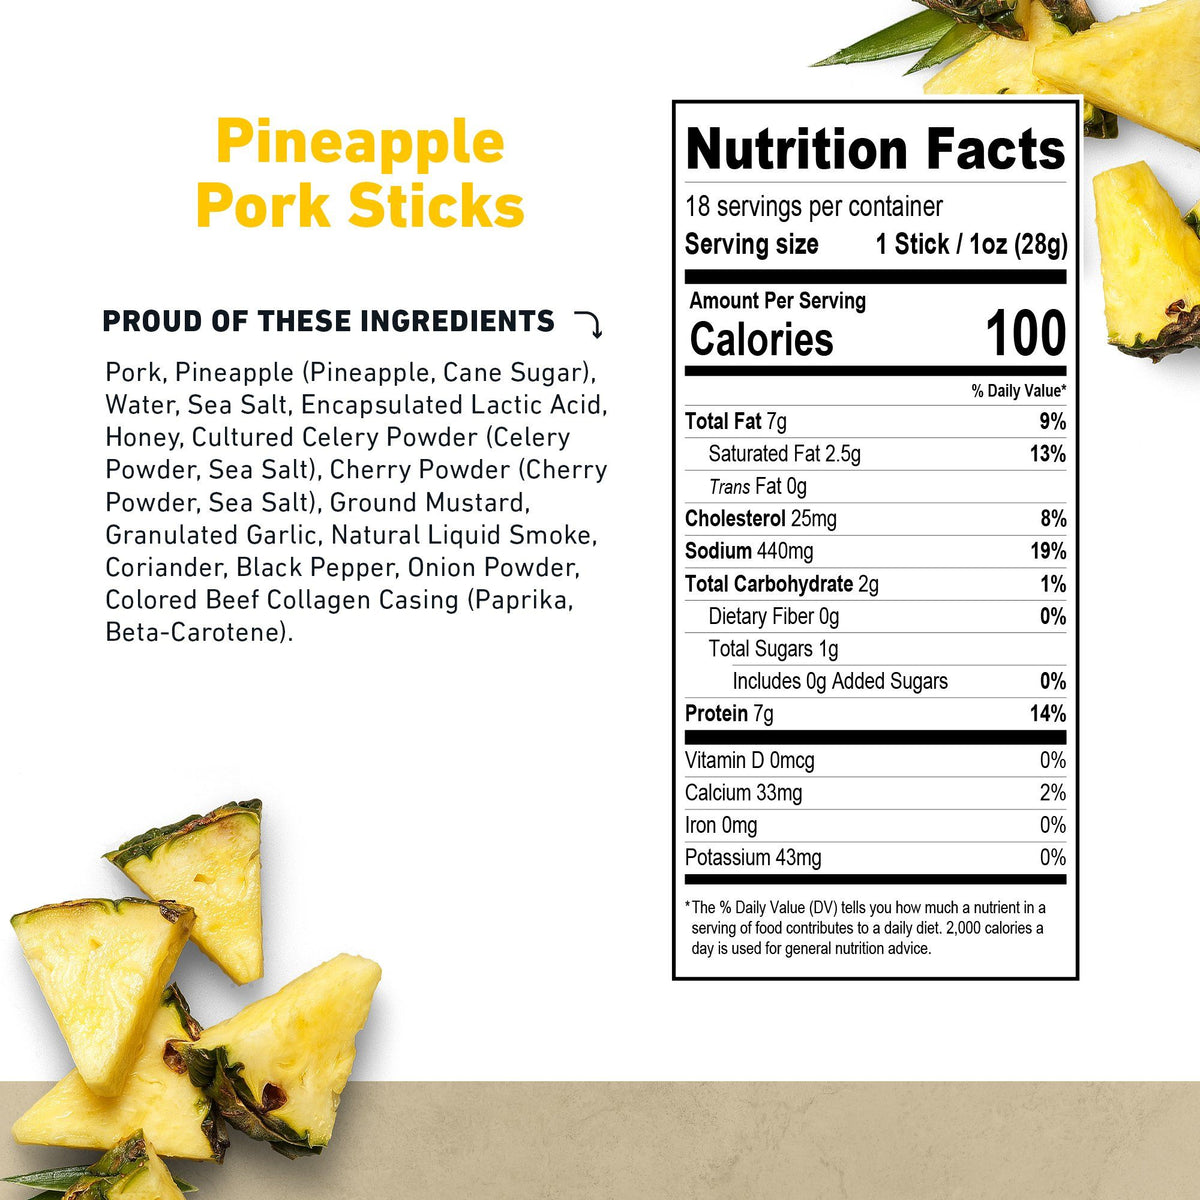 Pineapple Pork Stick Nutritional Information